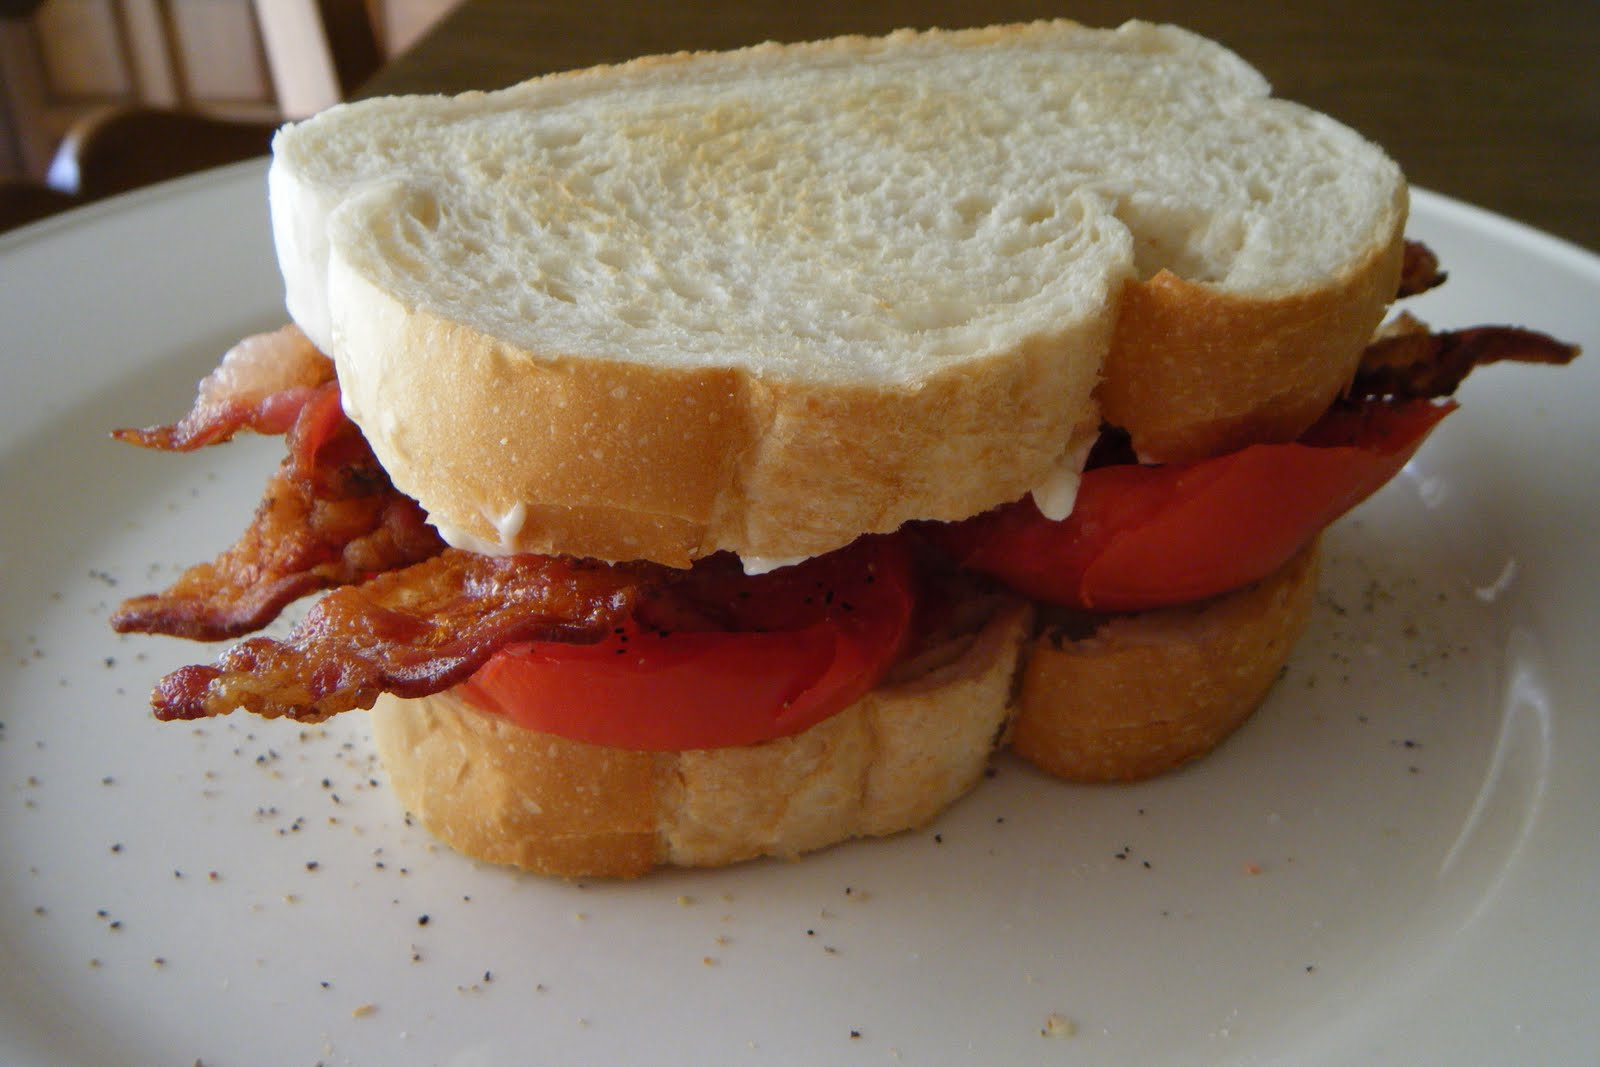 Tomato and mayonnaise sandwiches are best sandwich ...